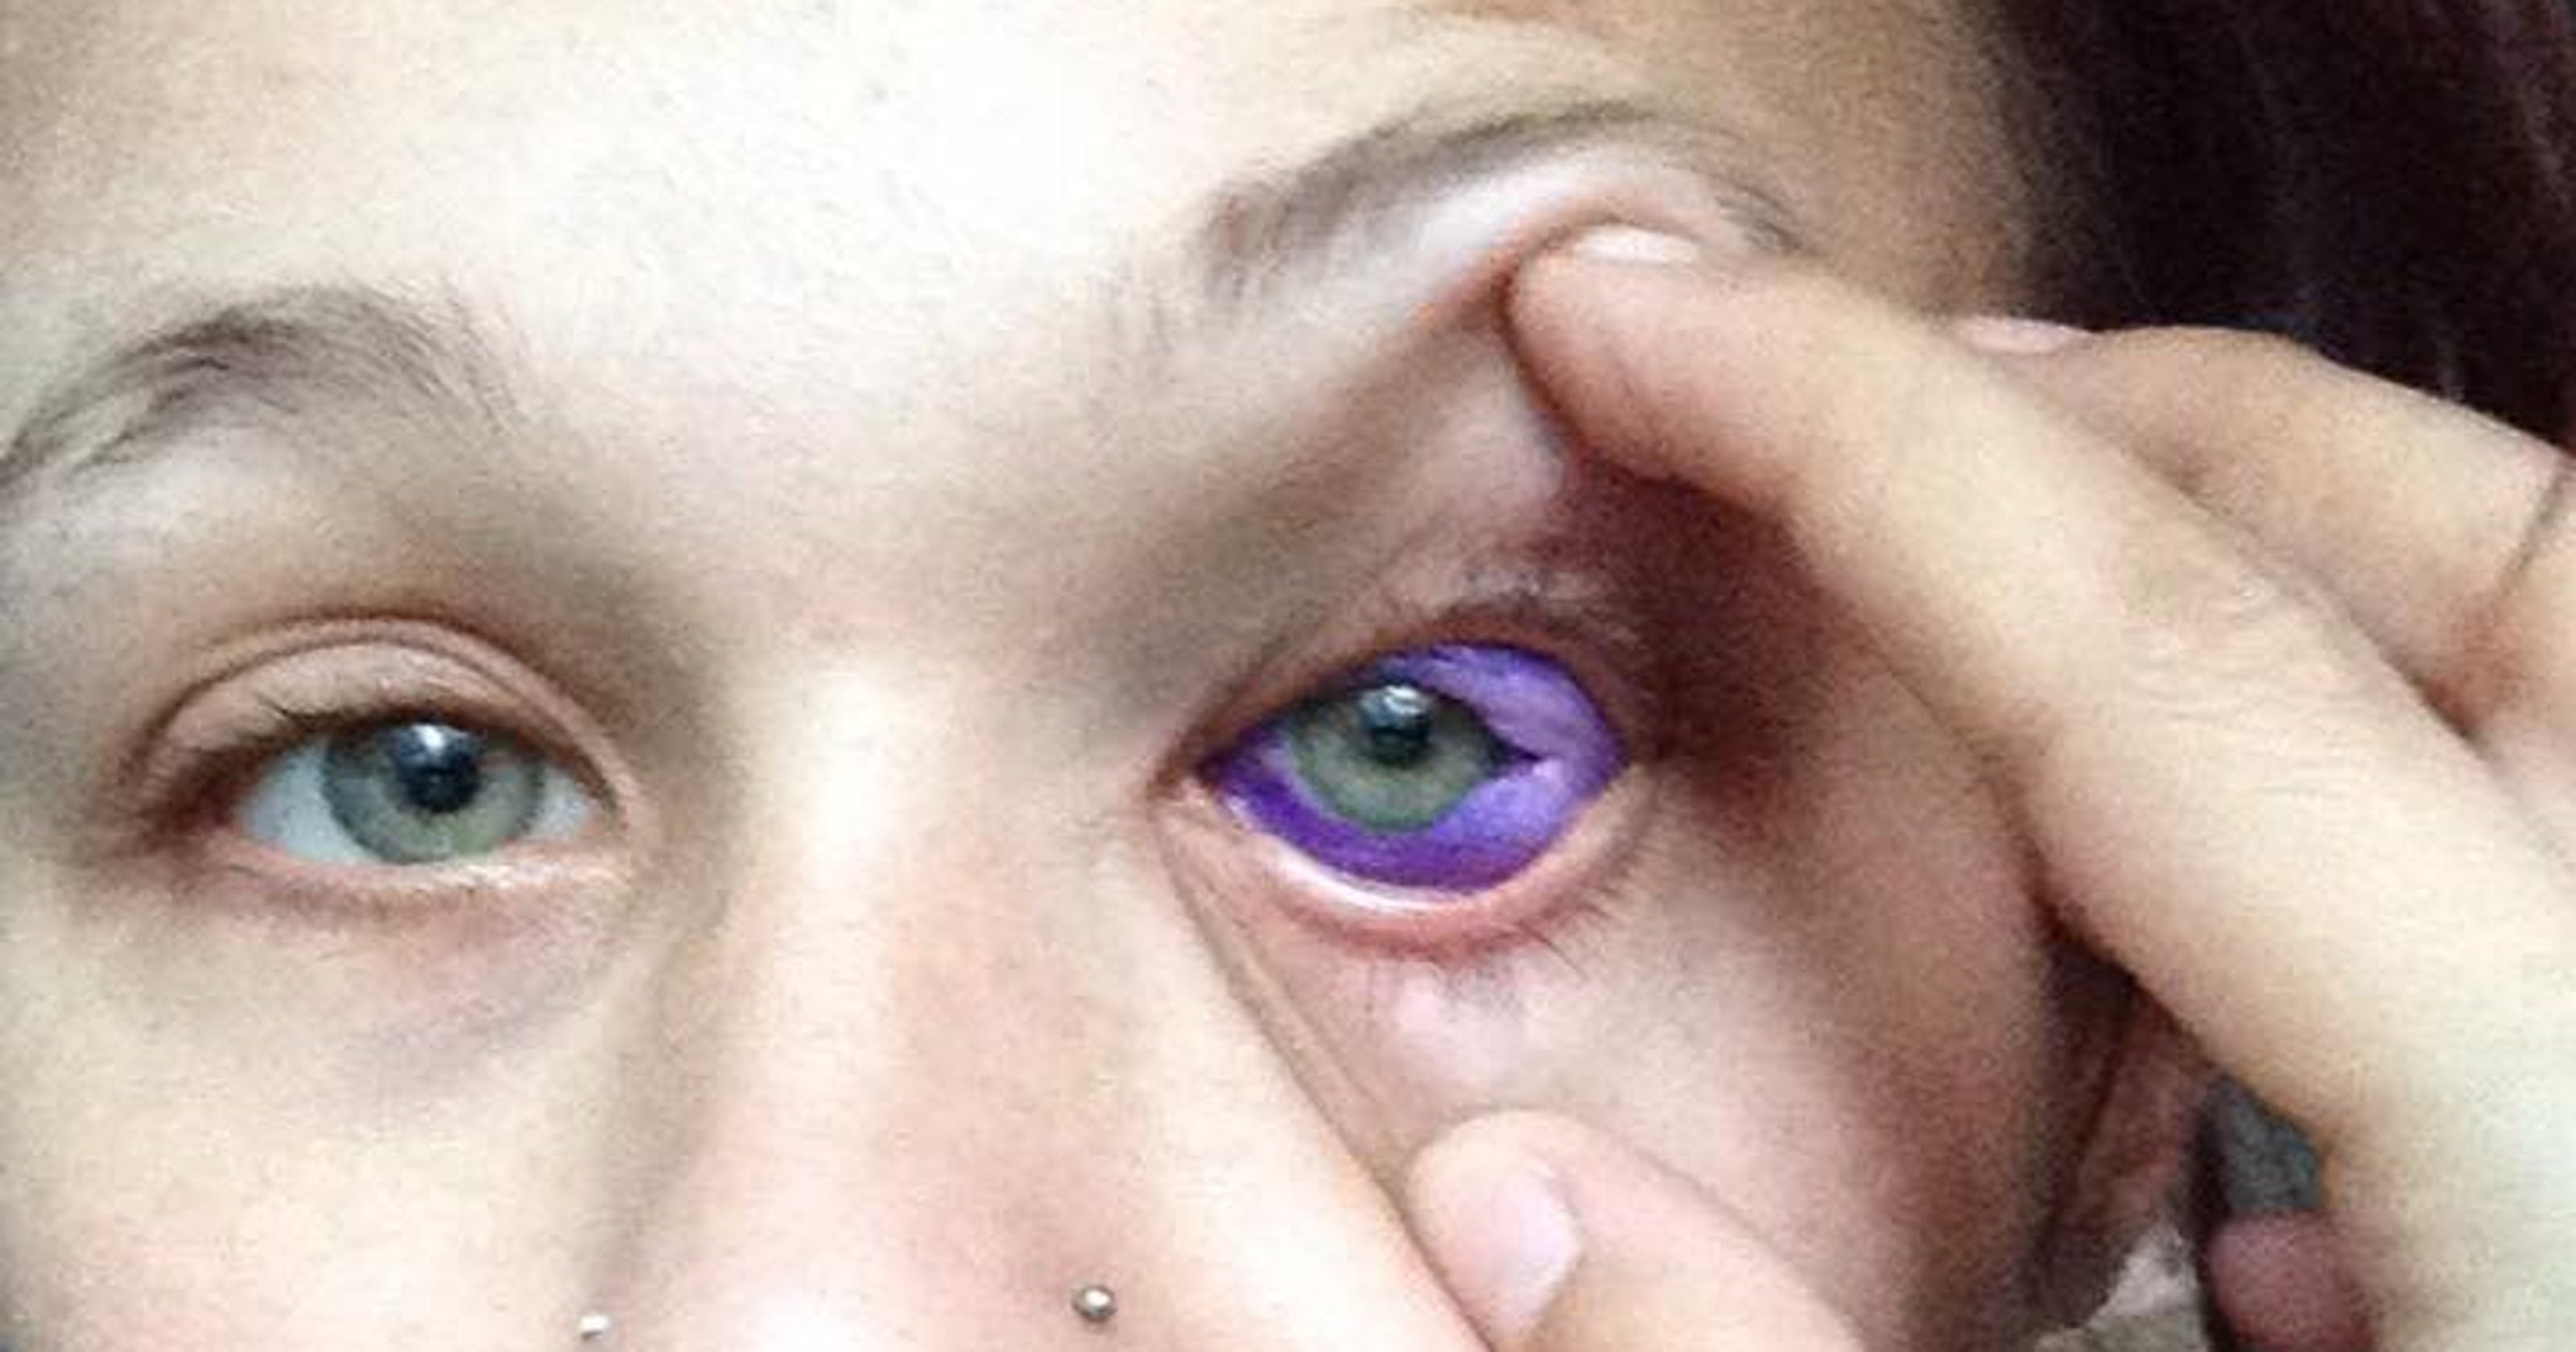 Sclera Tattoo Dont Ink Your Eyeball Just Dont Do It